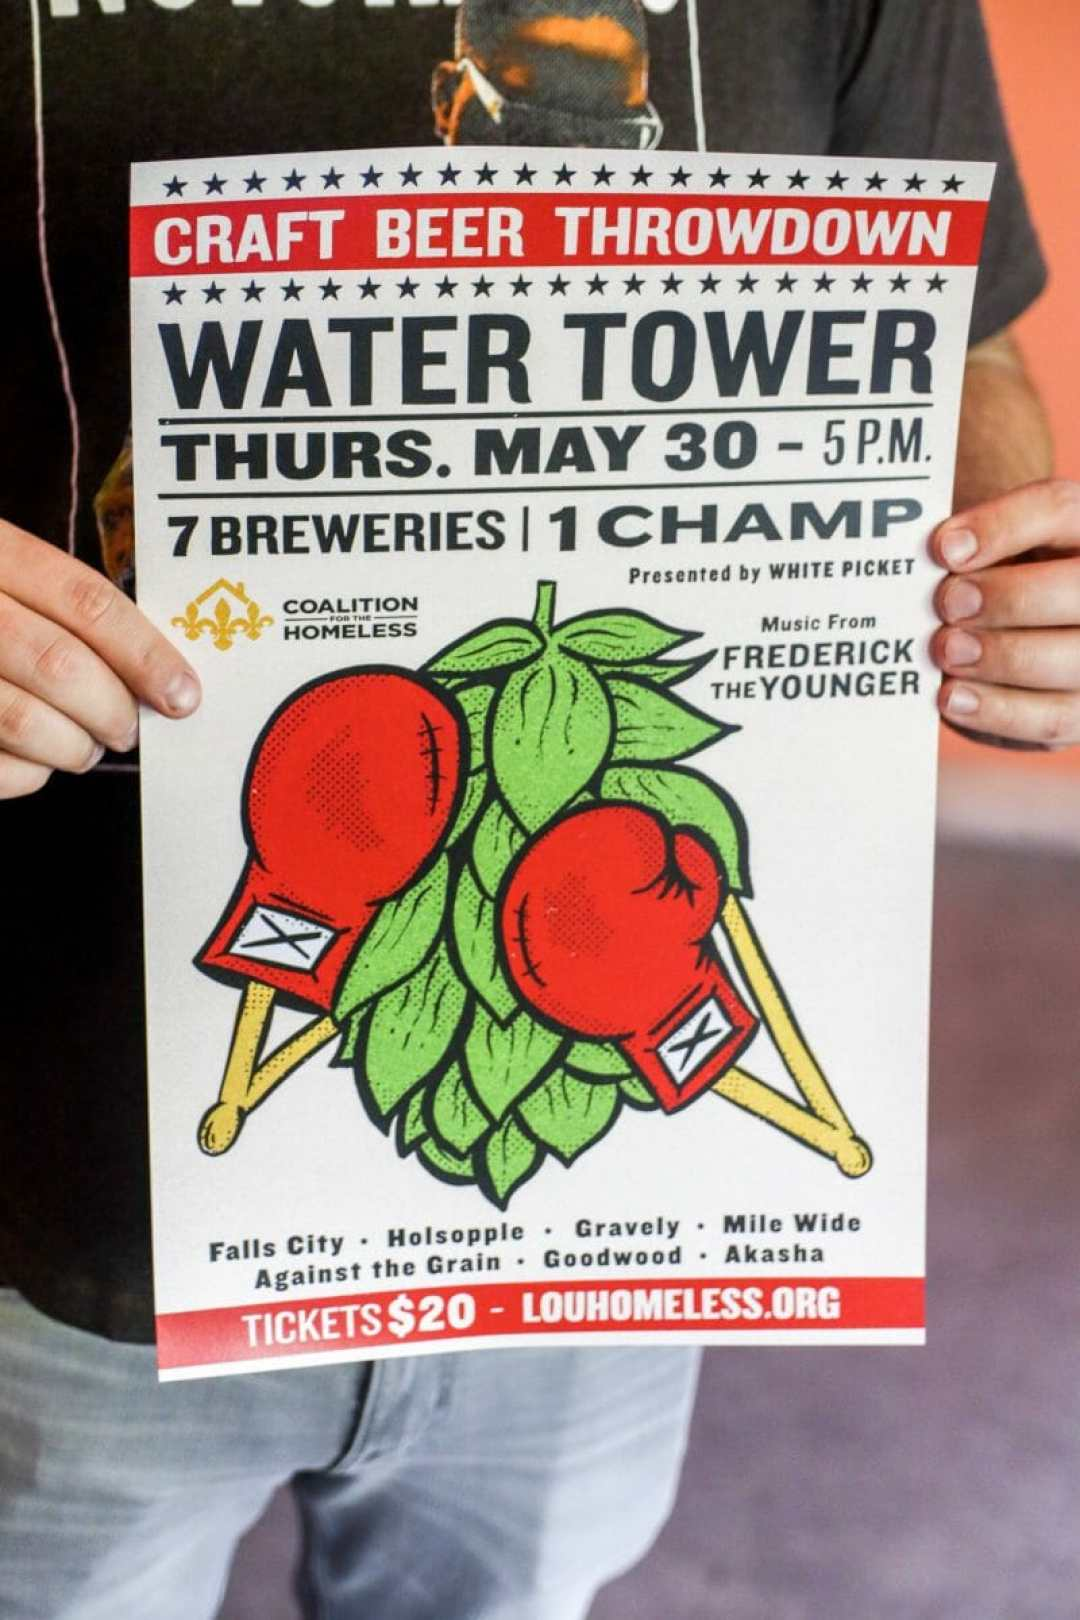 Craft beer Throwdown Louisville KY